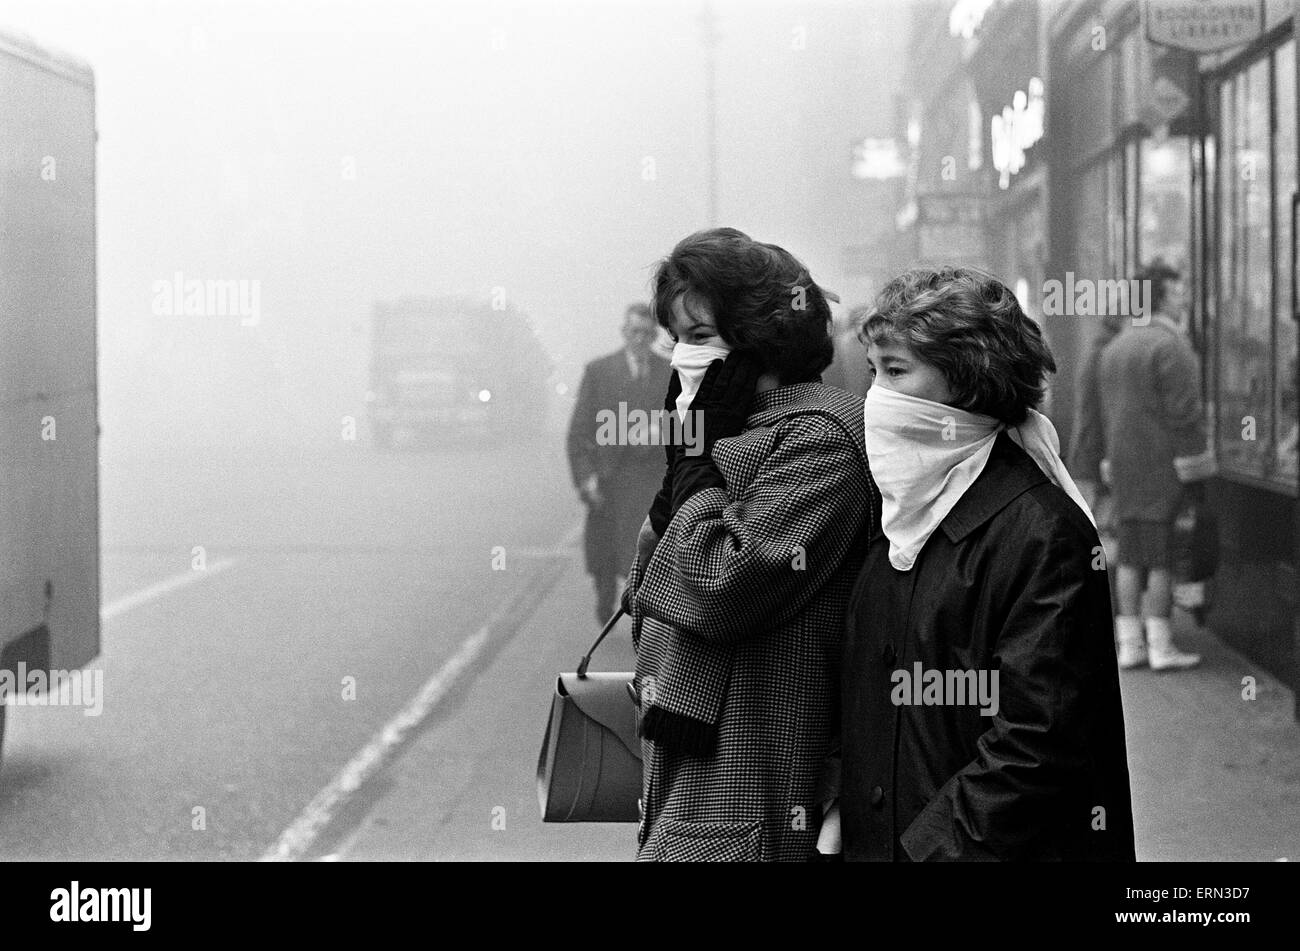 Scenes of a fog bound London, 5th December 1962. - Stock Image